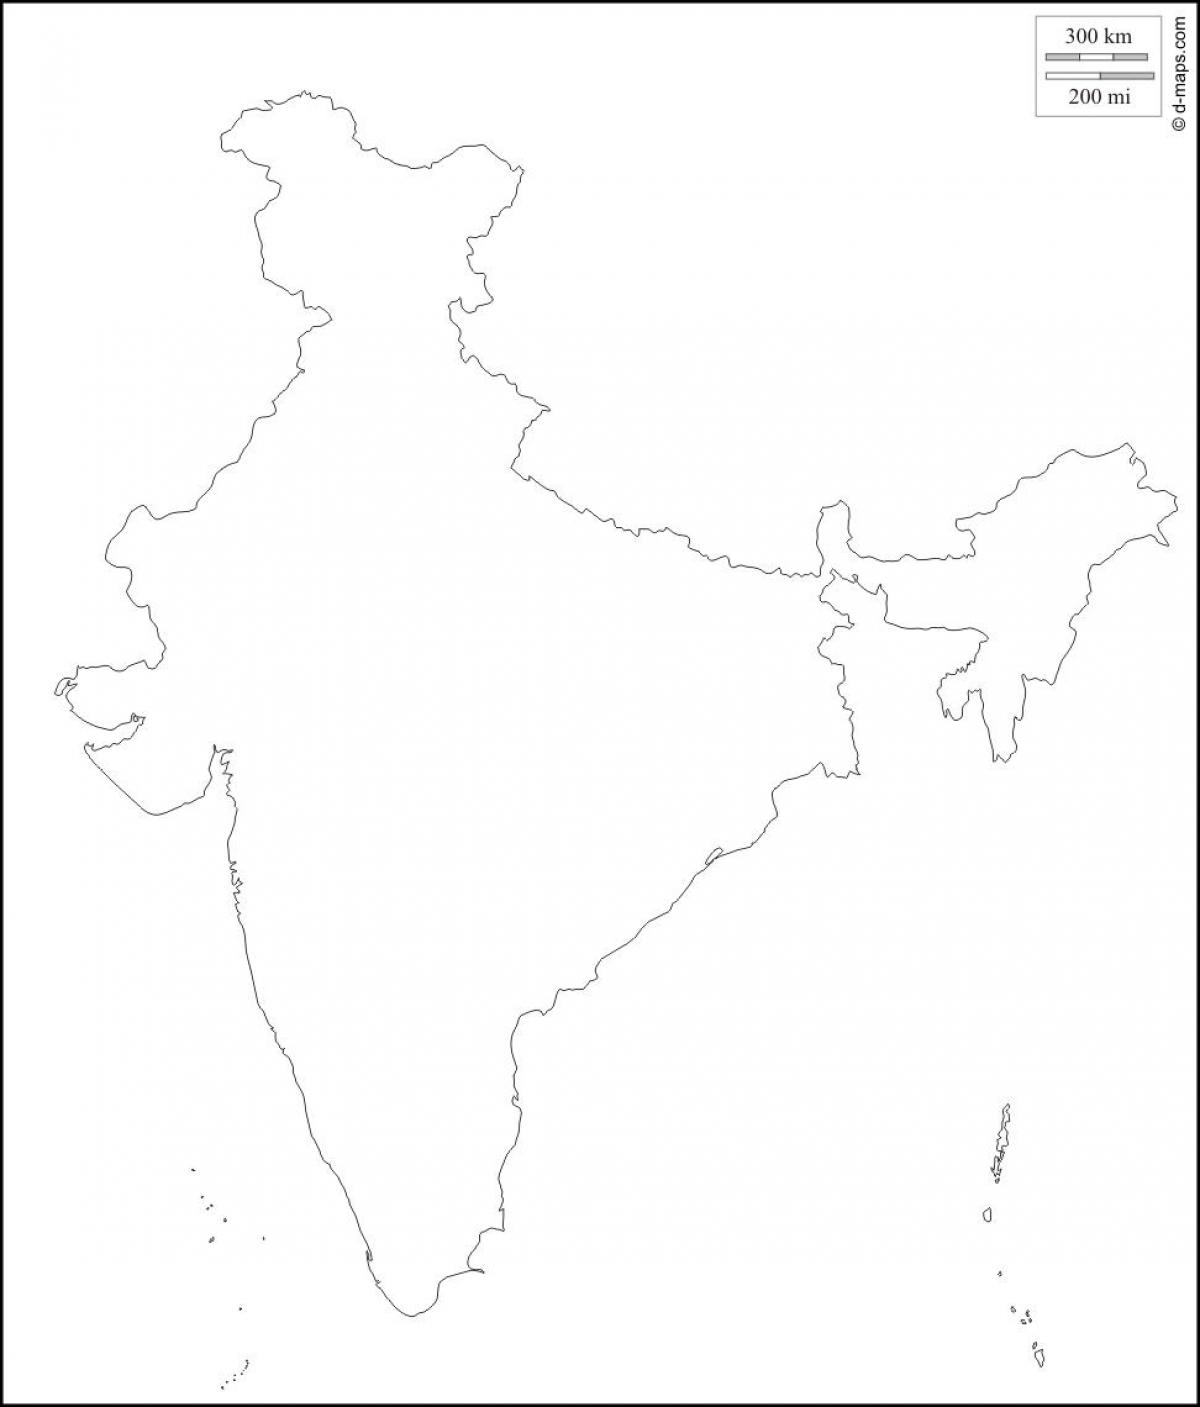 India outline map hd - Outline map of India hd (Southern Asia - Asia)